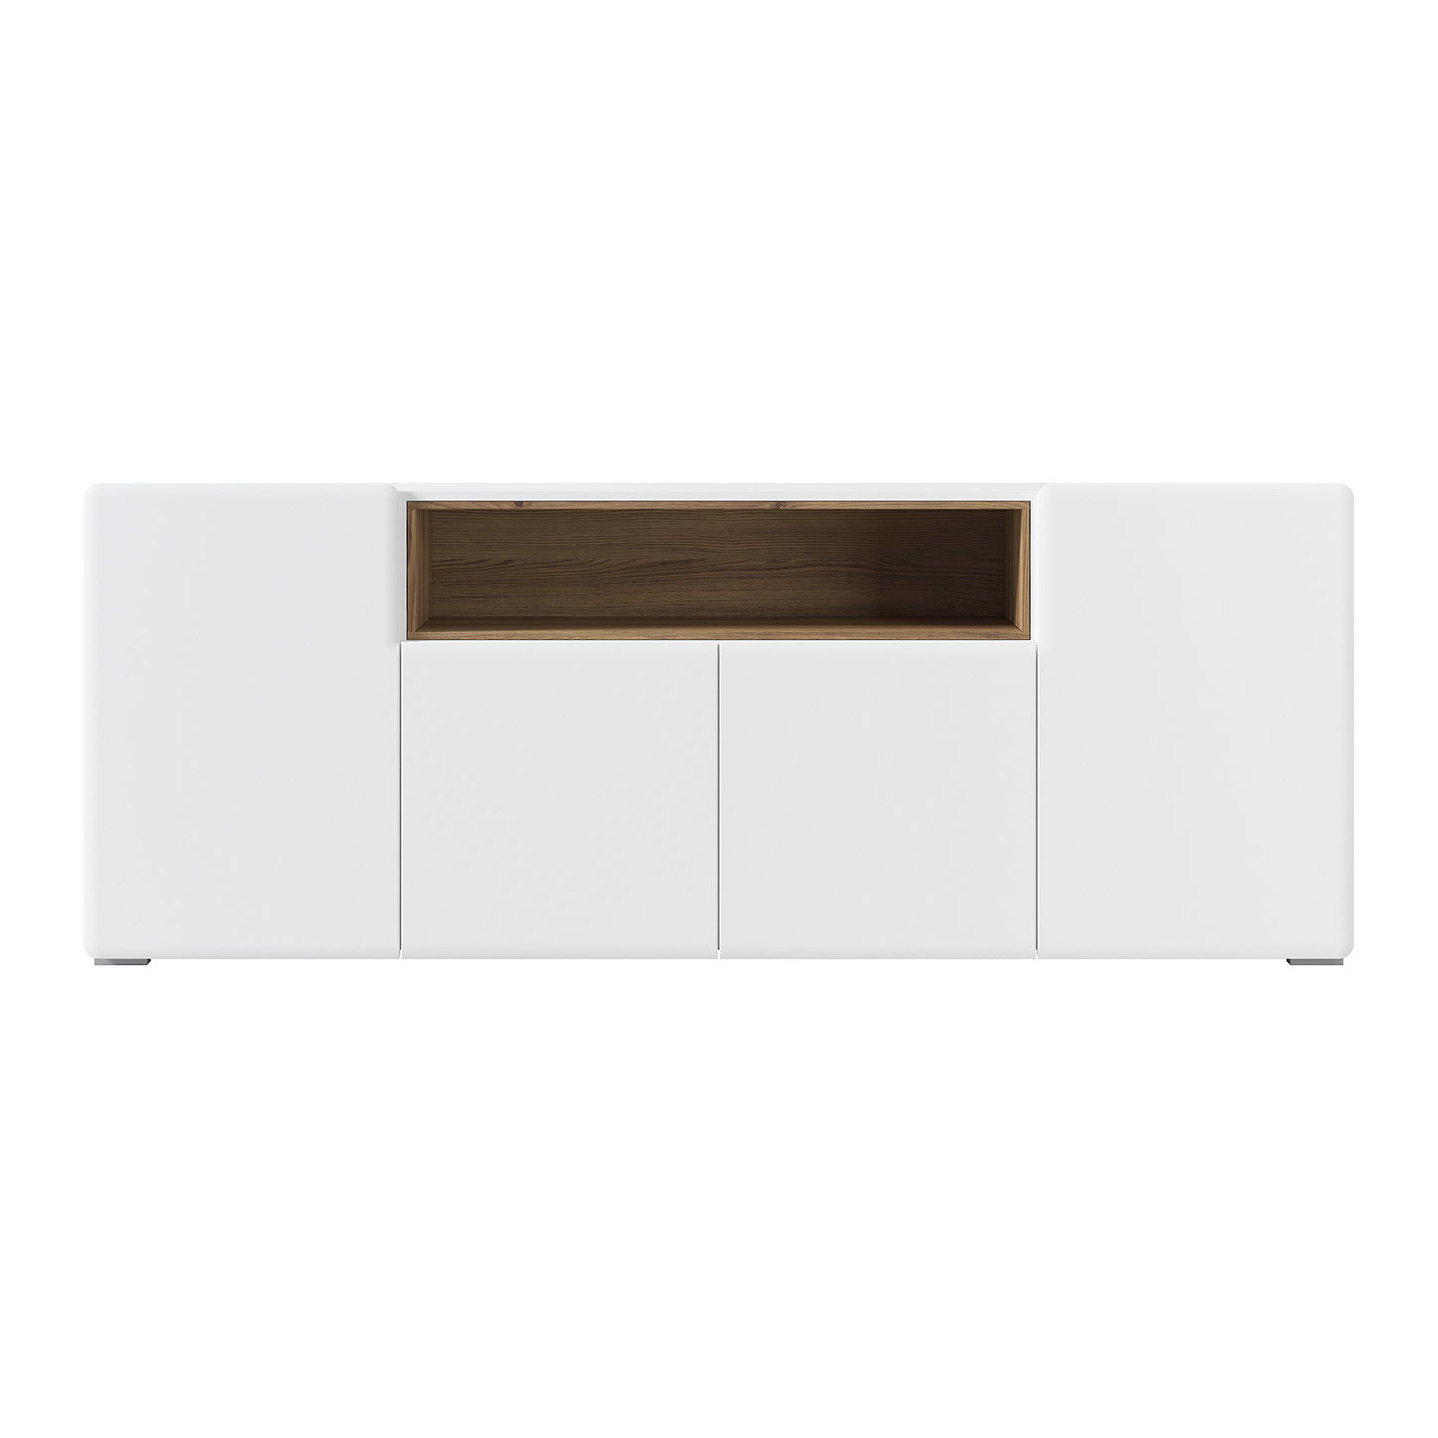 Spradley Sideboard | Allmodern Within Clifton Sideboards (View 18 of 20)